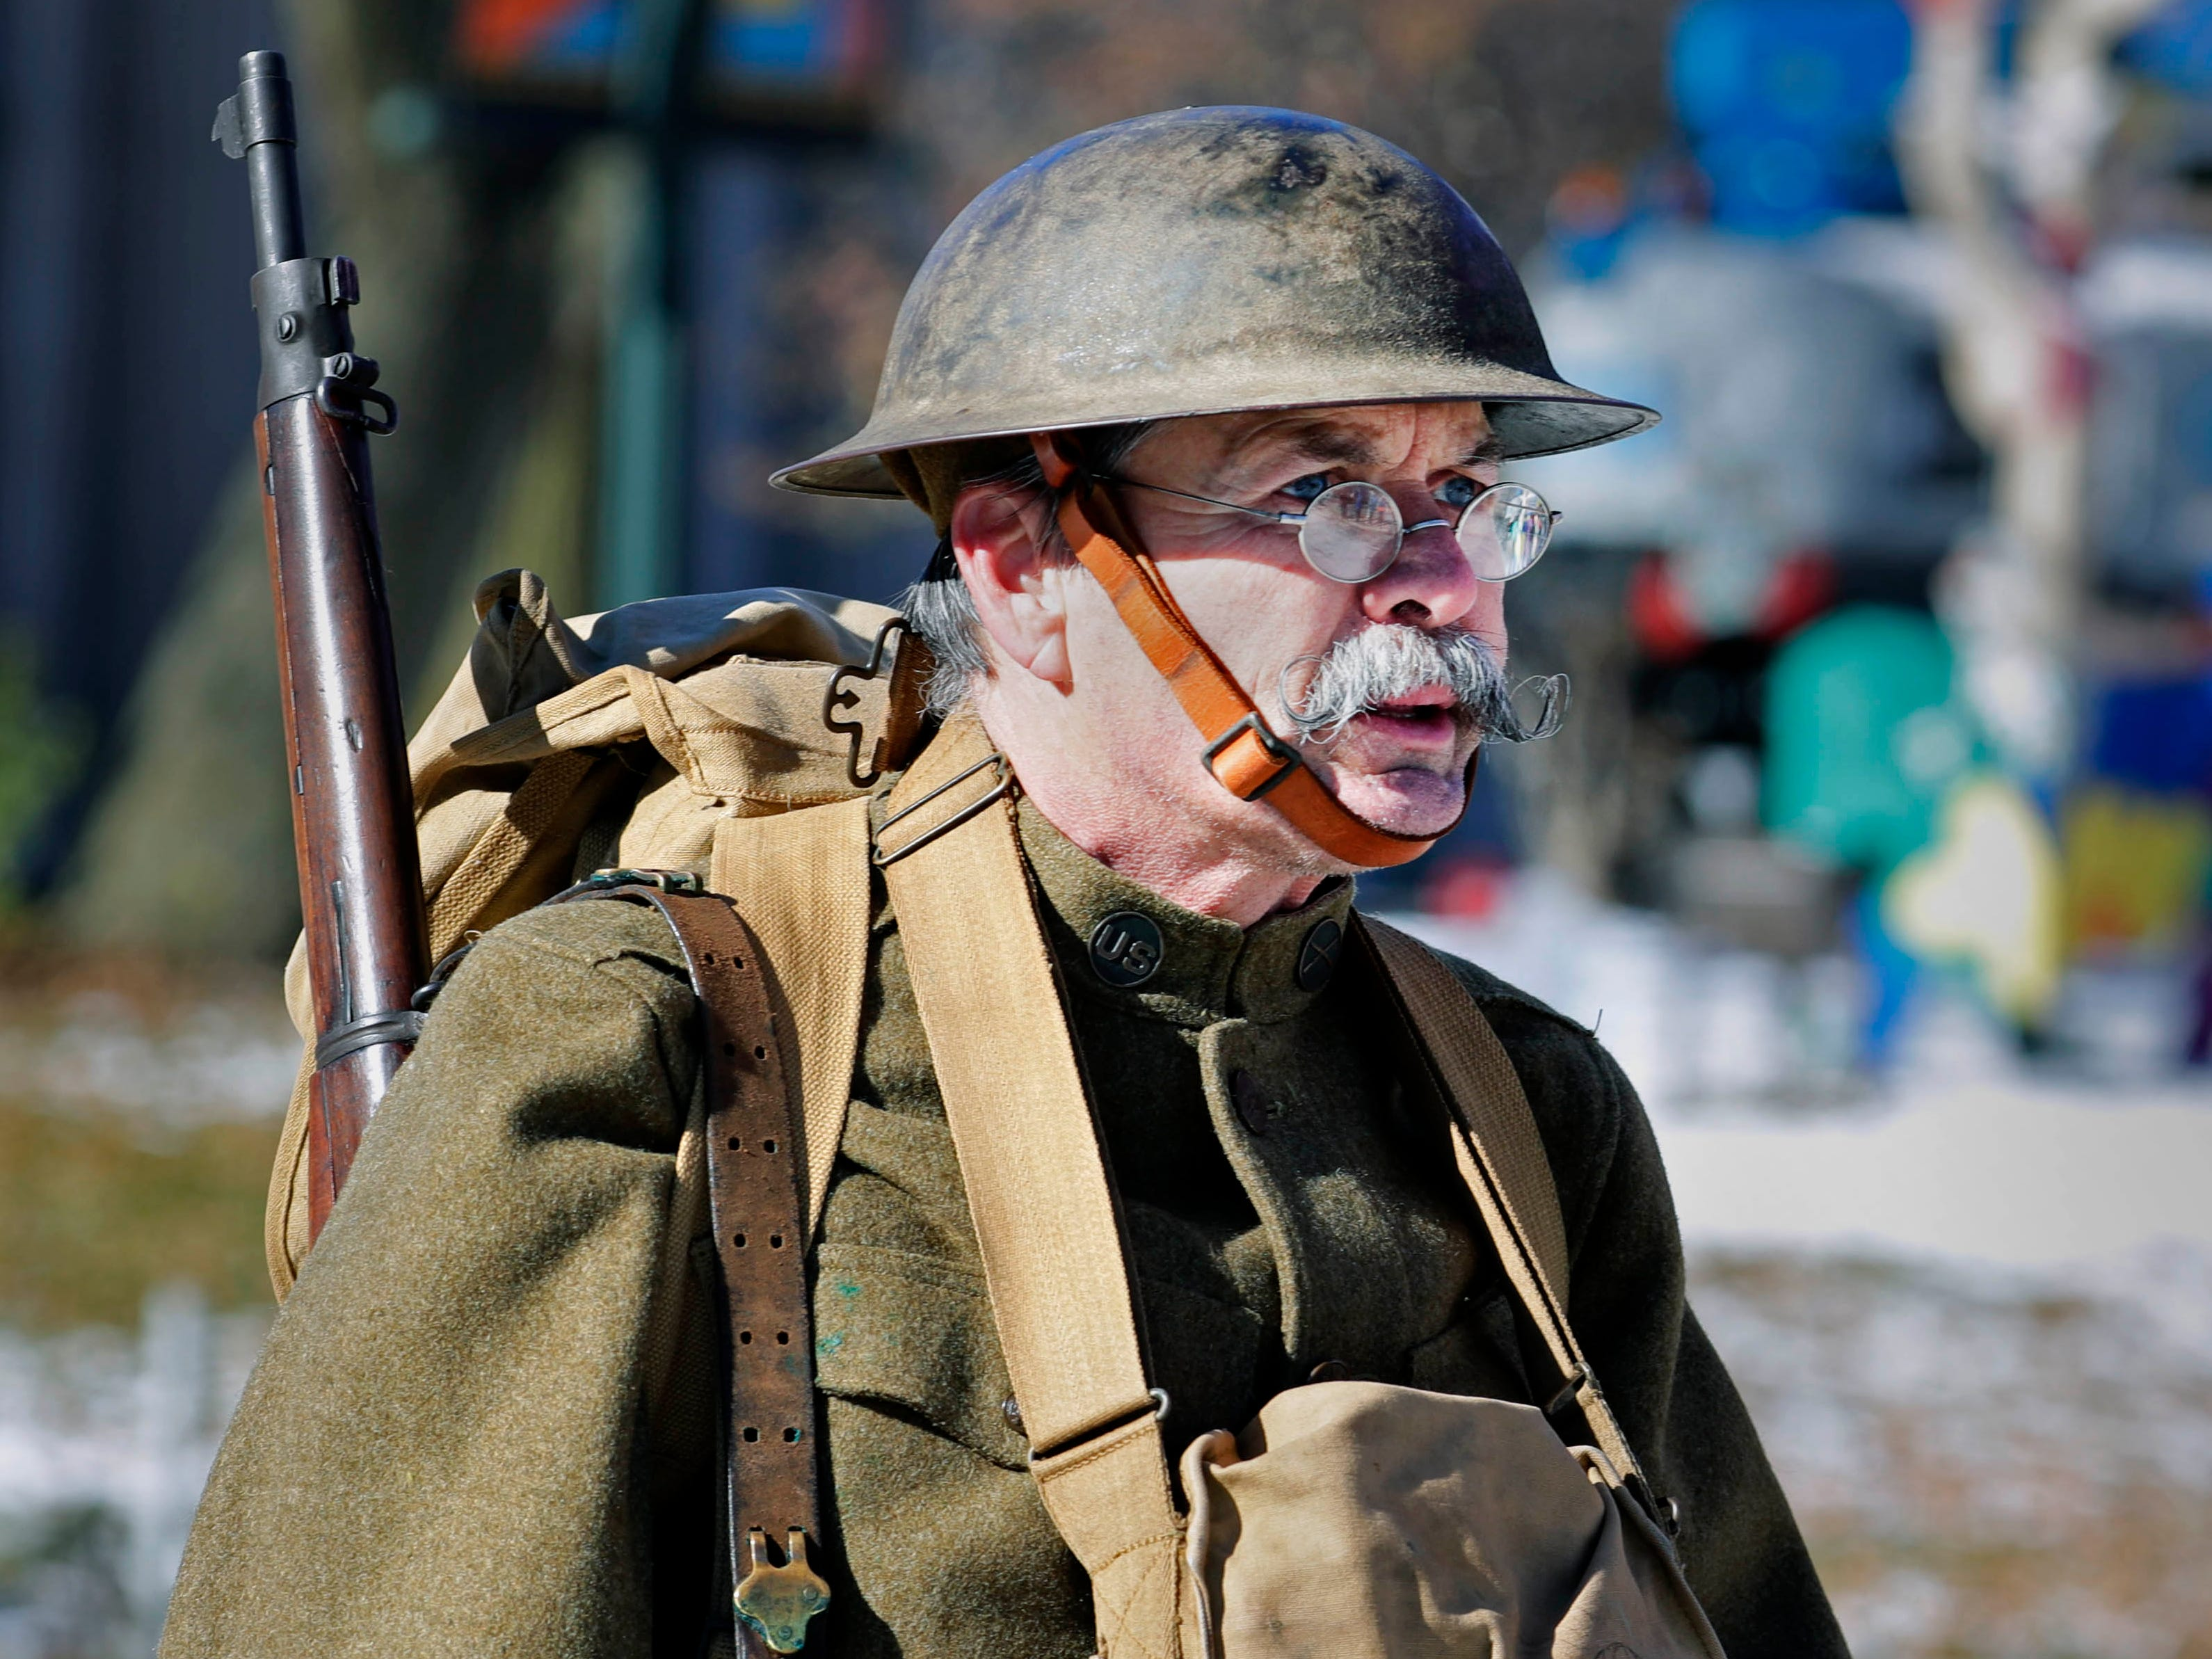 A parade participant is seen dressed as an American World War I soldier.